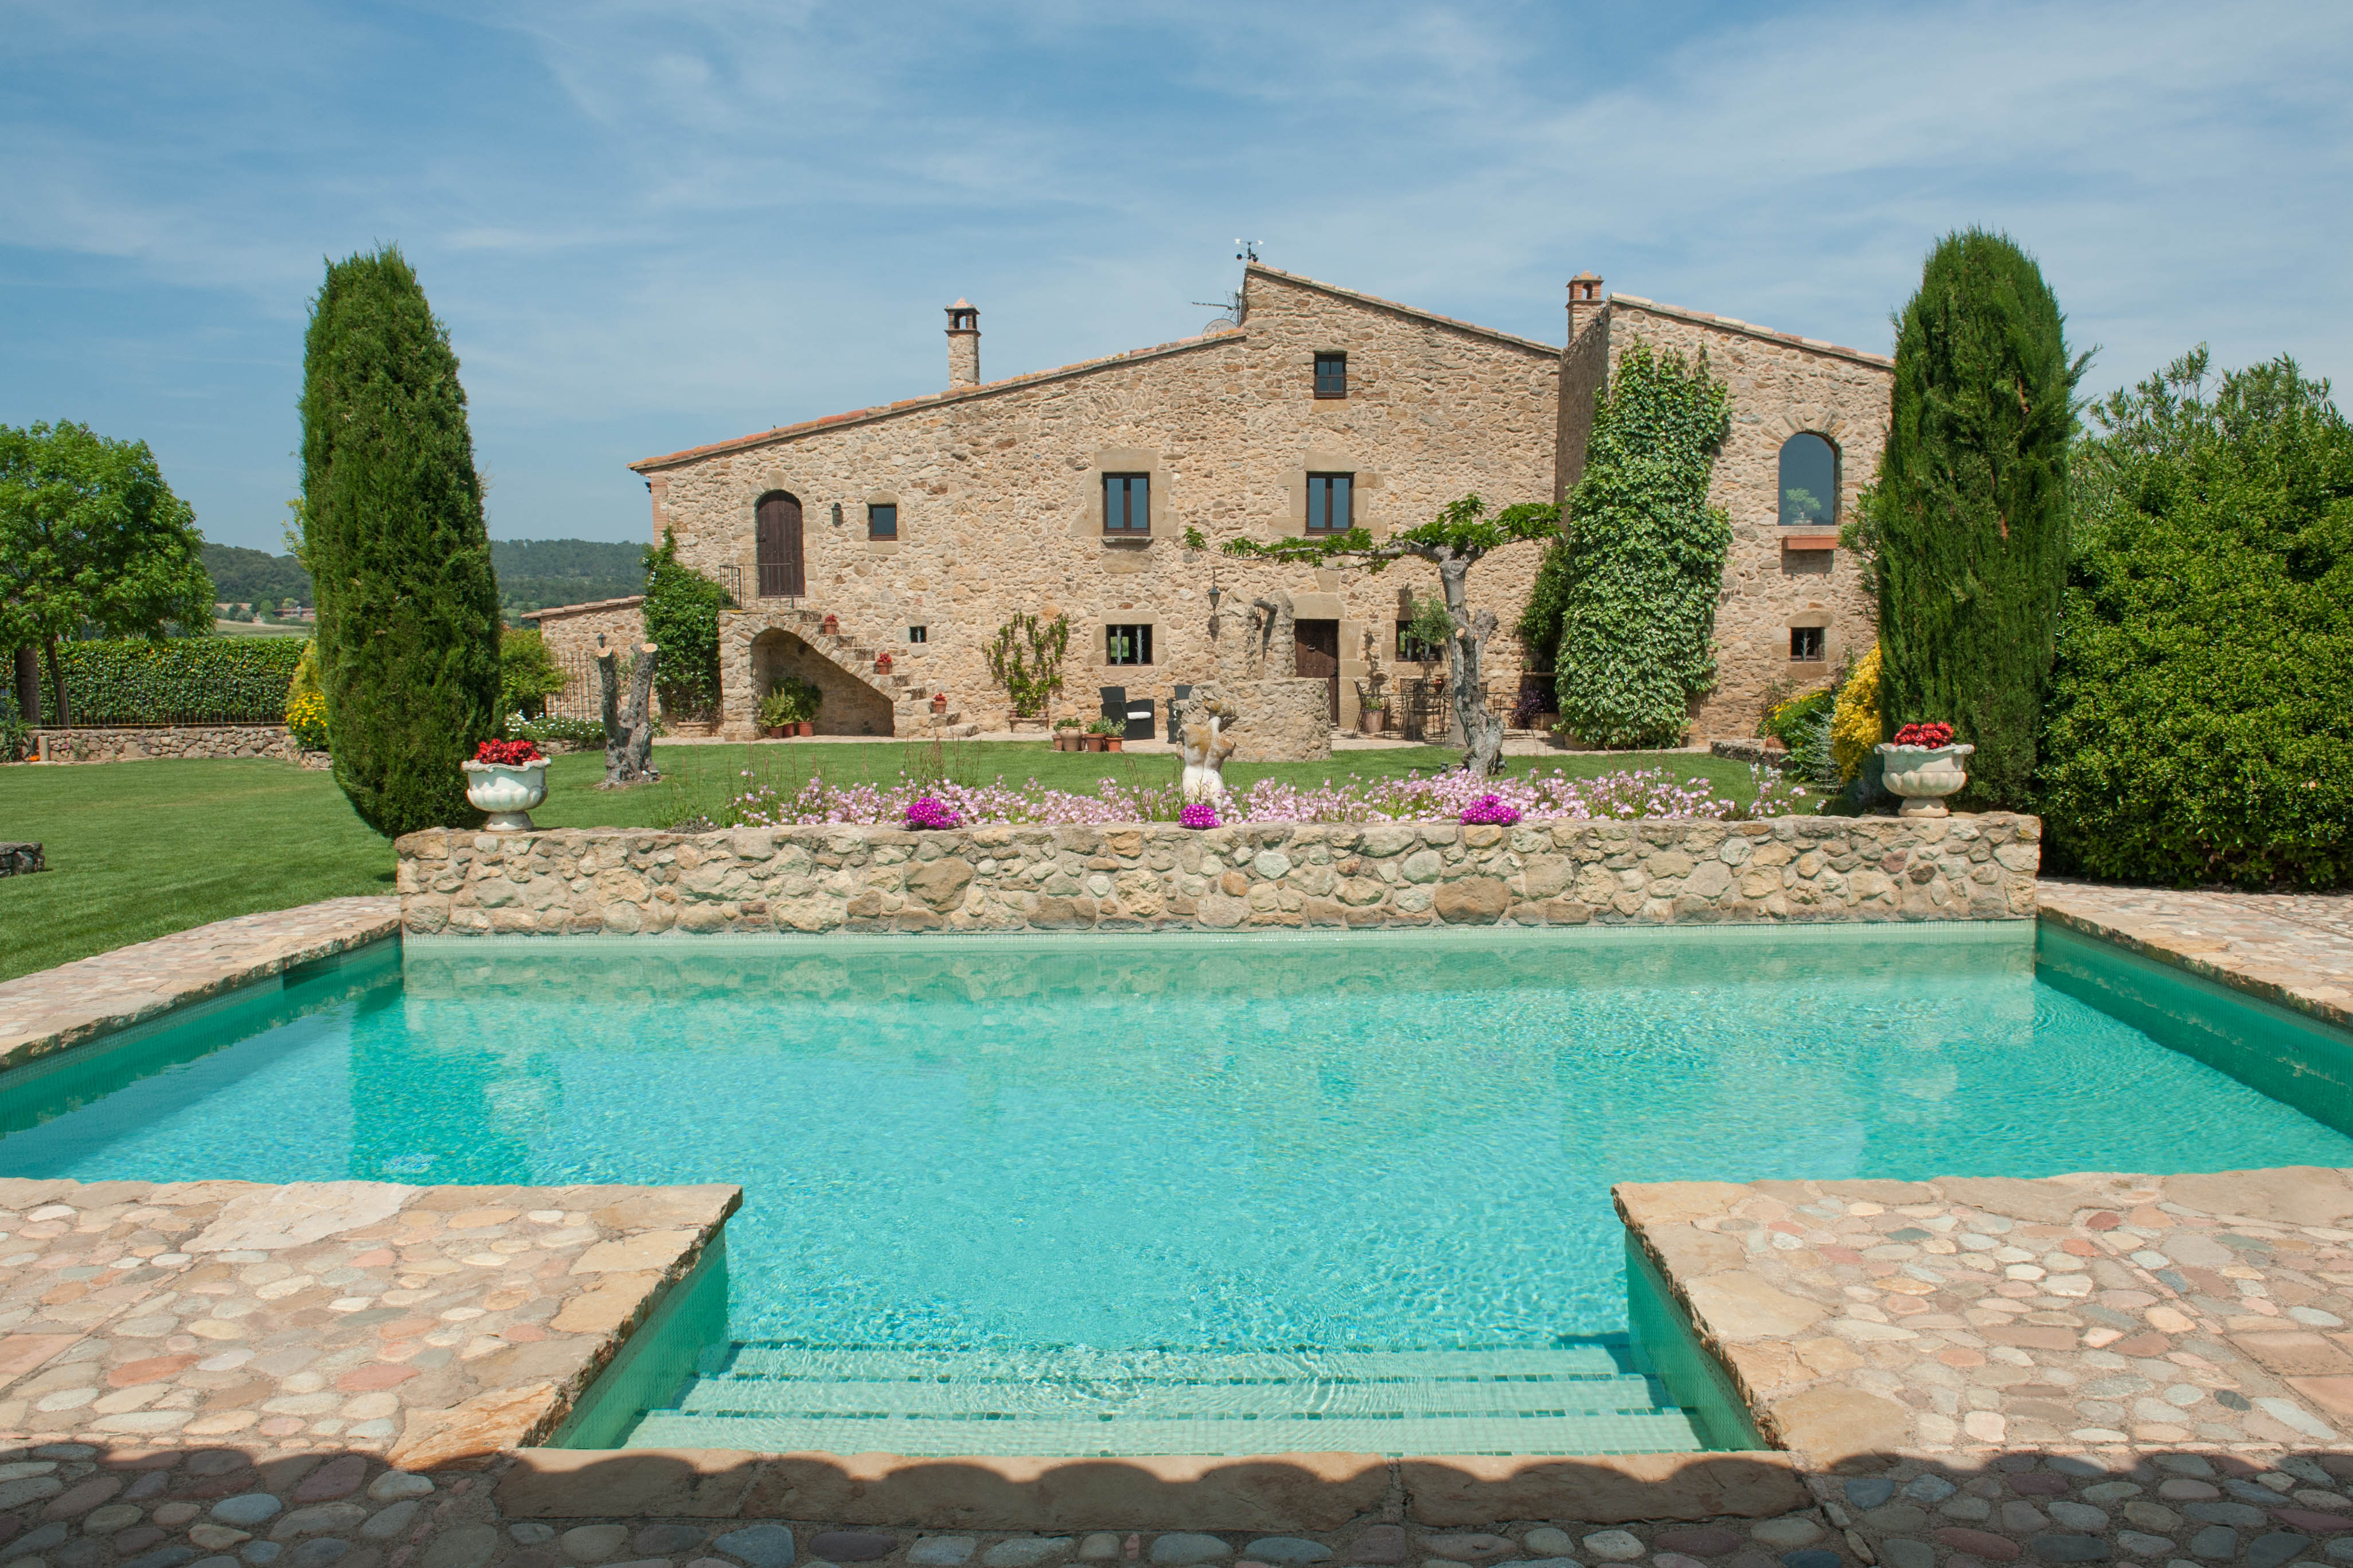 Single Family Home for Sale at Dream house surrounded by nature and tranquility Other Cities Baix Emporda, Barcelona 17001 Spain